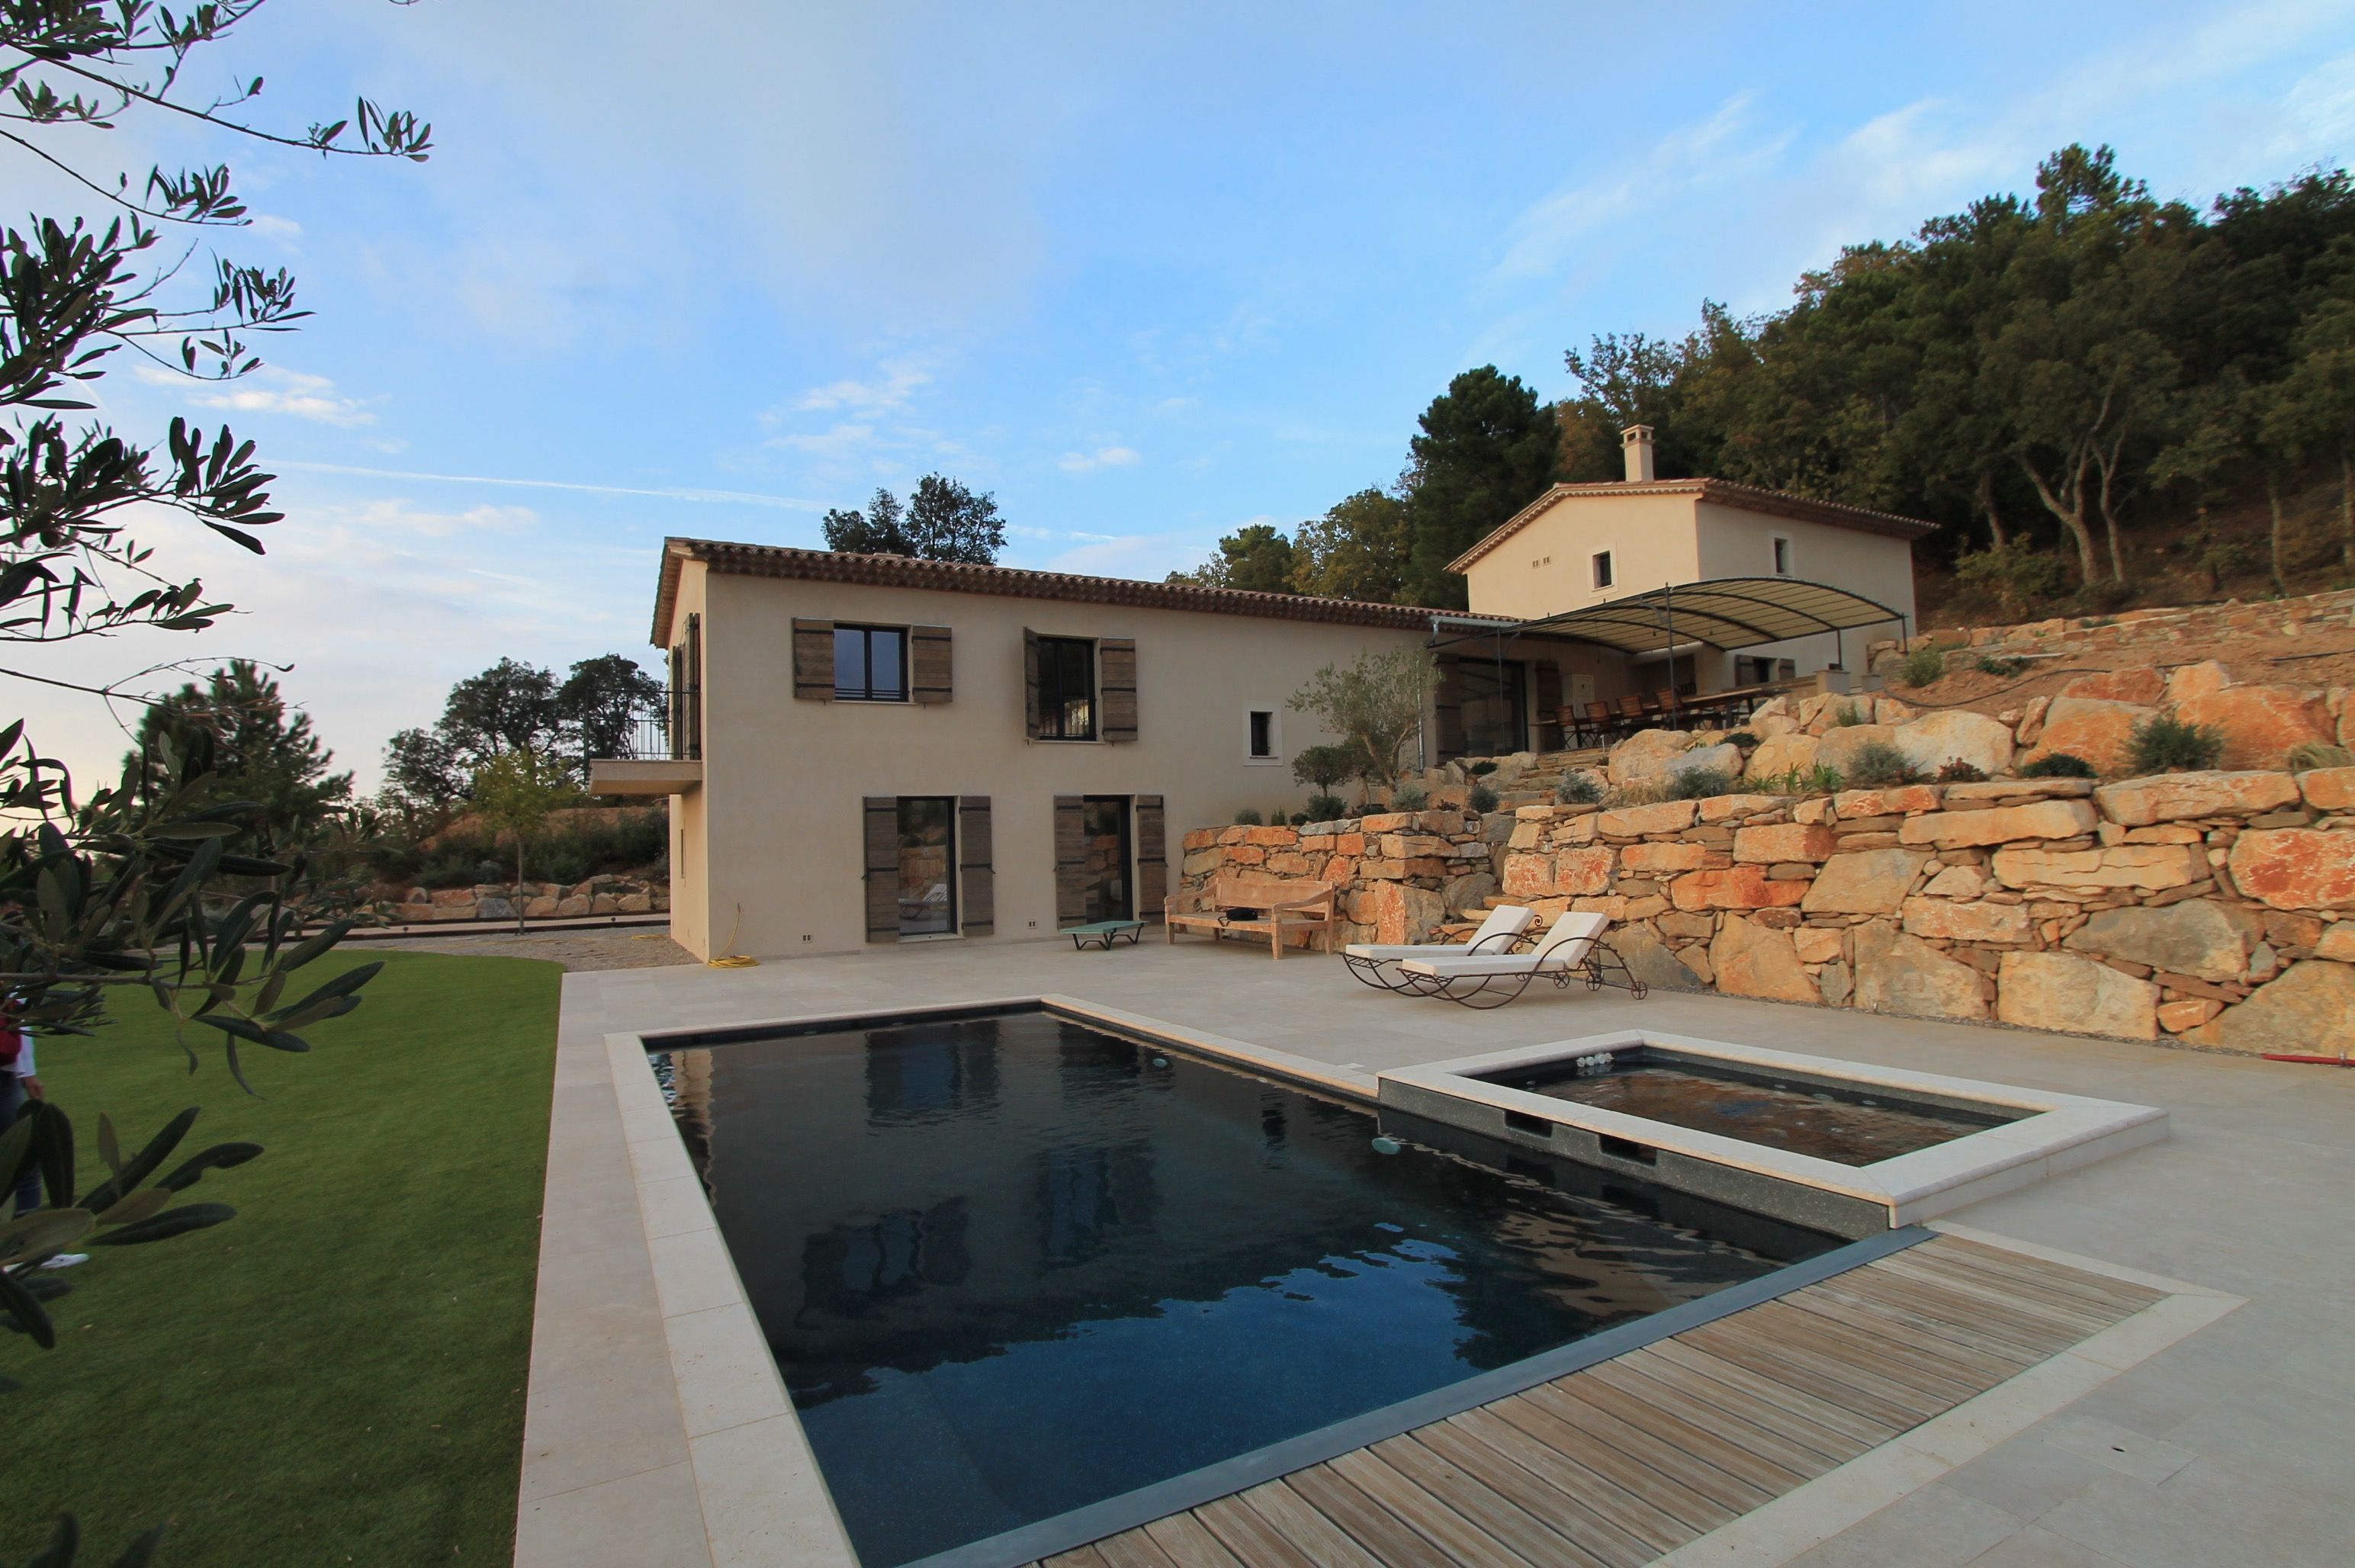 Villa Suzanne | fine holiday rentals -   18 holiday Home france ideas